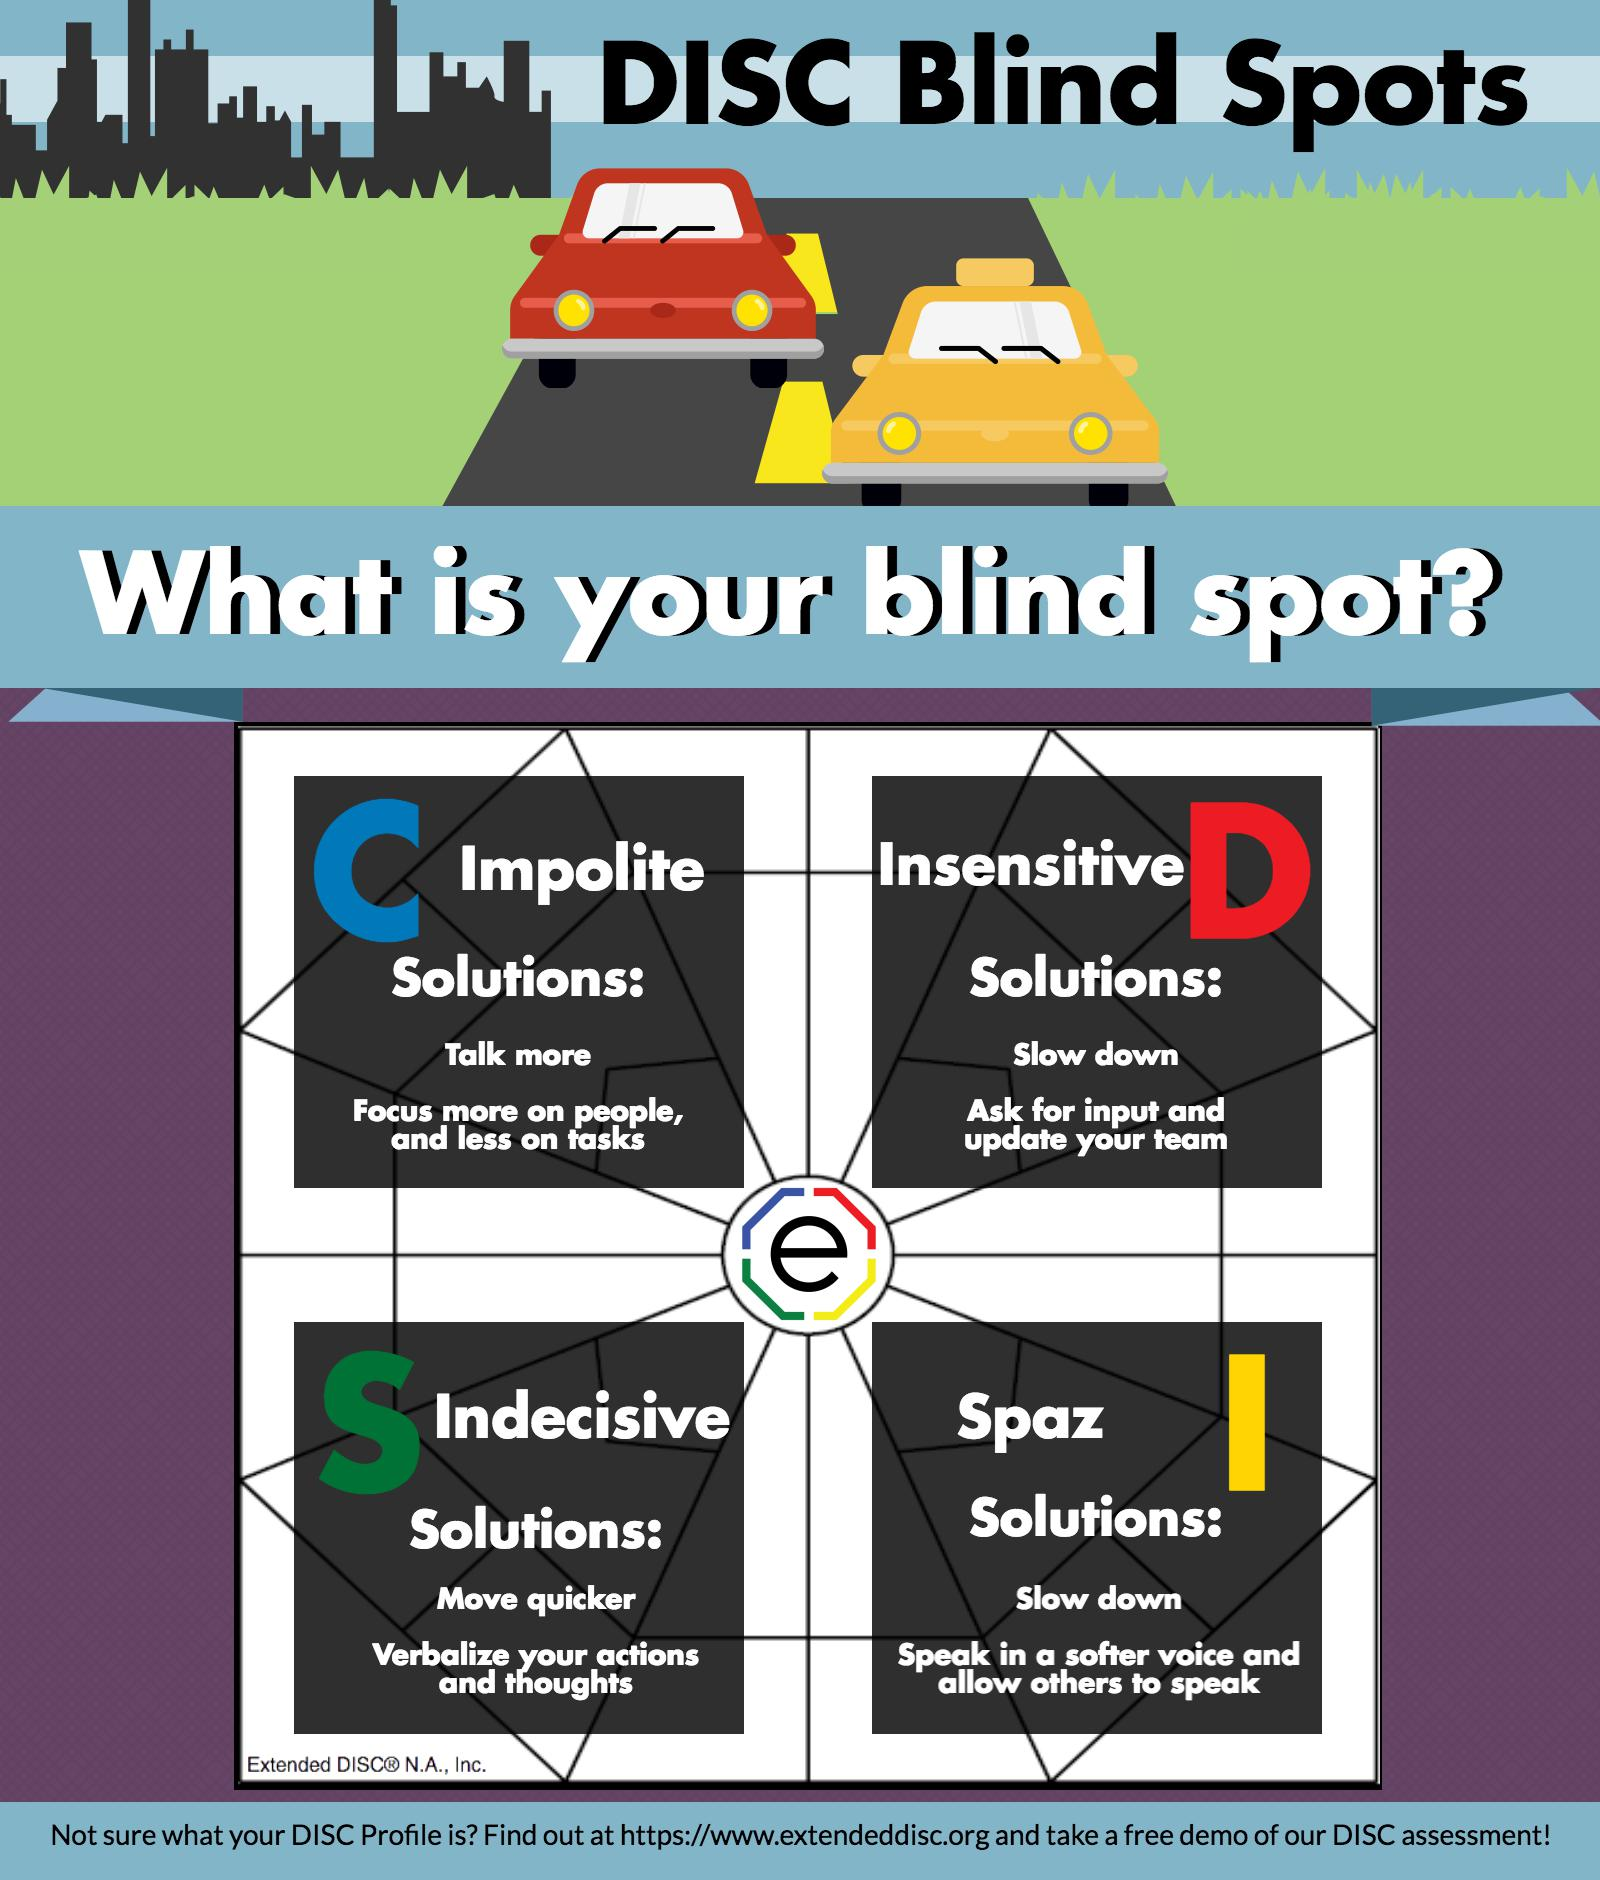 DISC Blind Spots: What Do You Mean I'm...